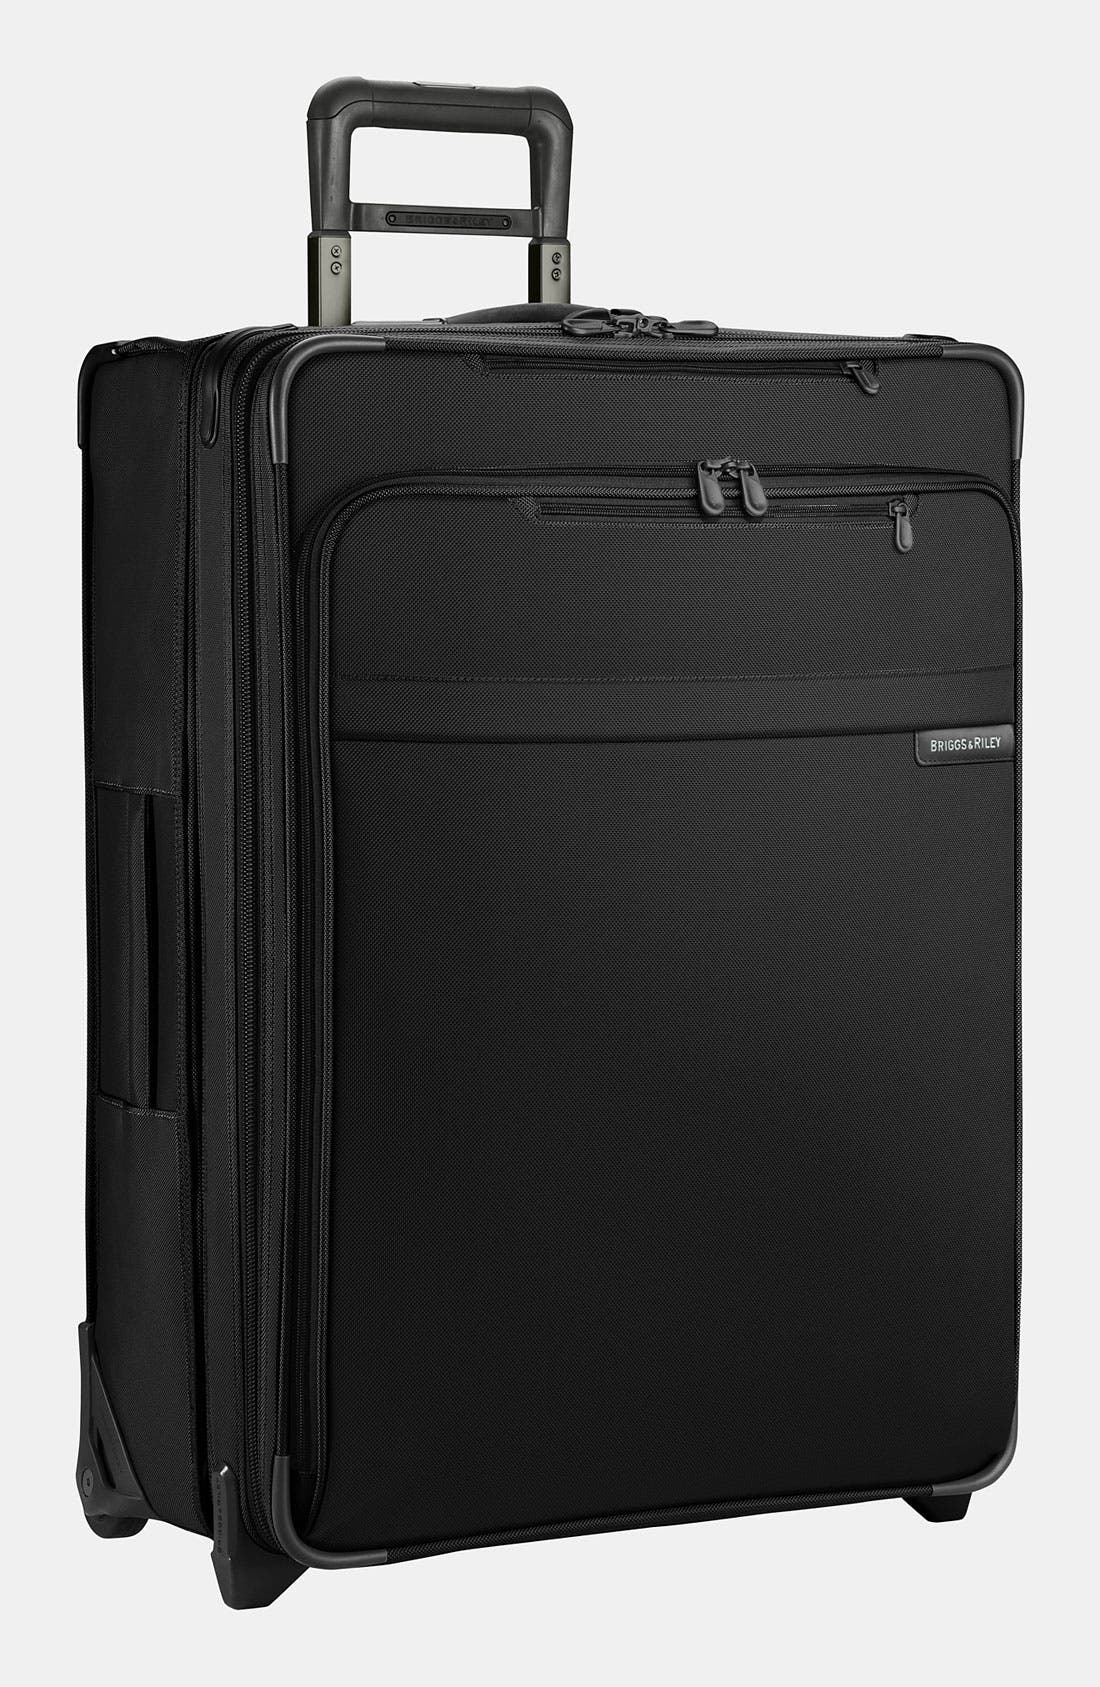 Alternate Image 1 Selected - Briggs & Riley 'Large Baseline' Expandable Rolling Packing Case (27 Inch)